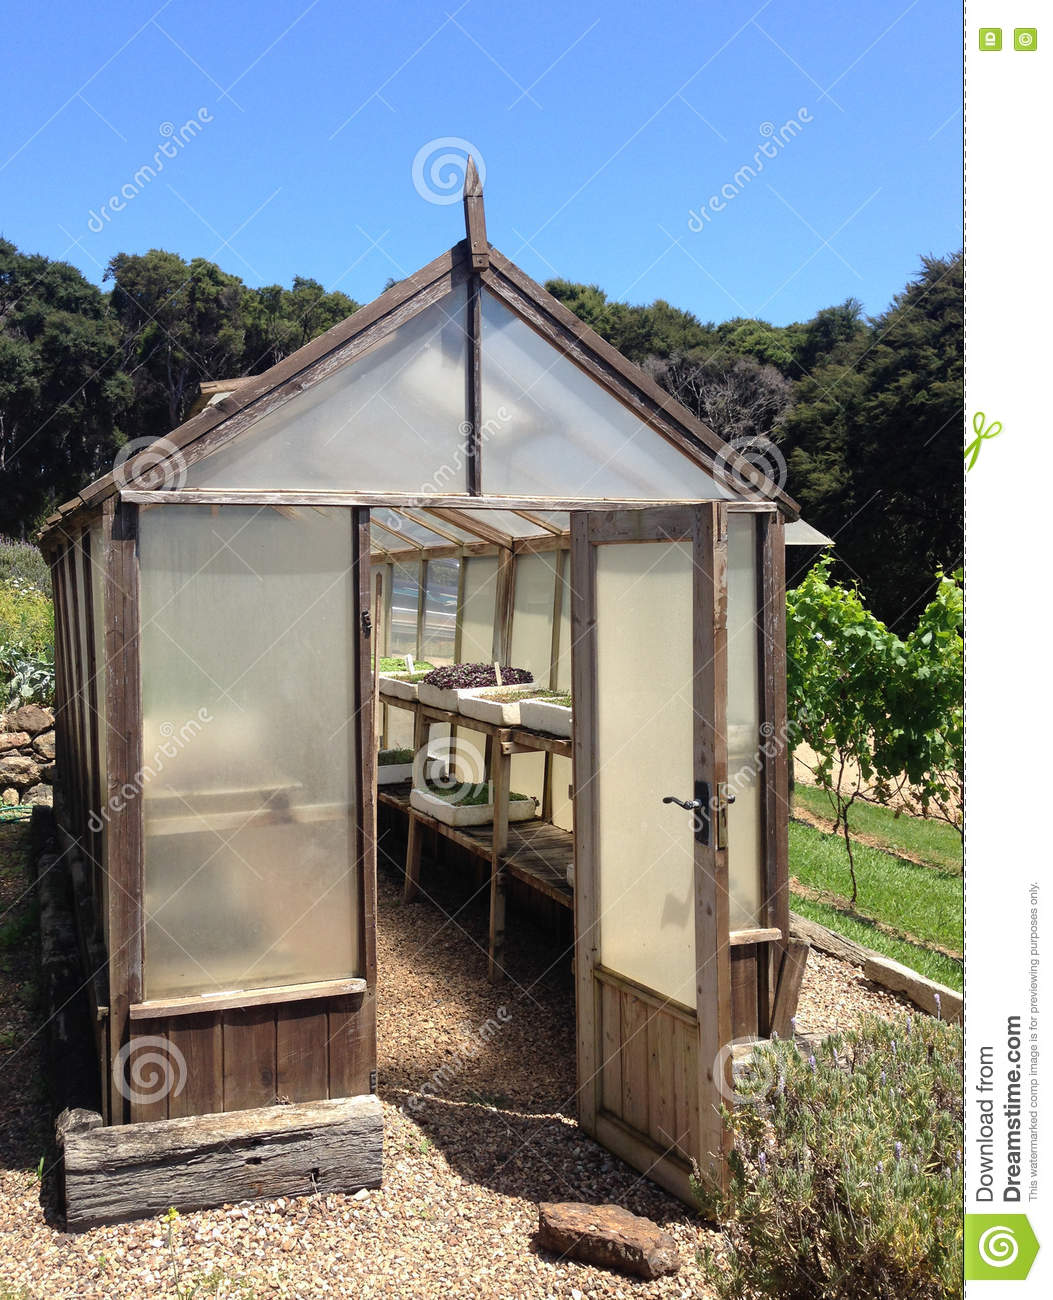 Traditional Wooden Greenhouse In A Garden Stock Image